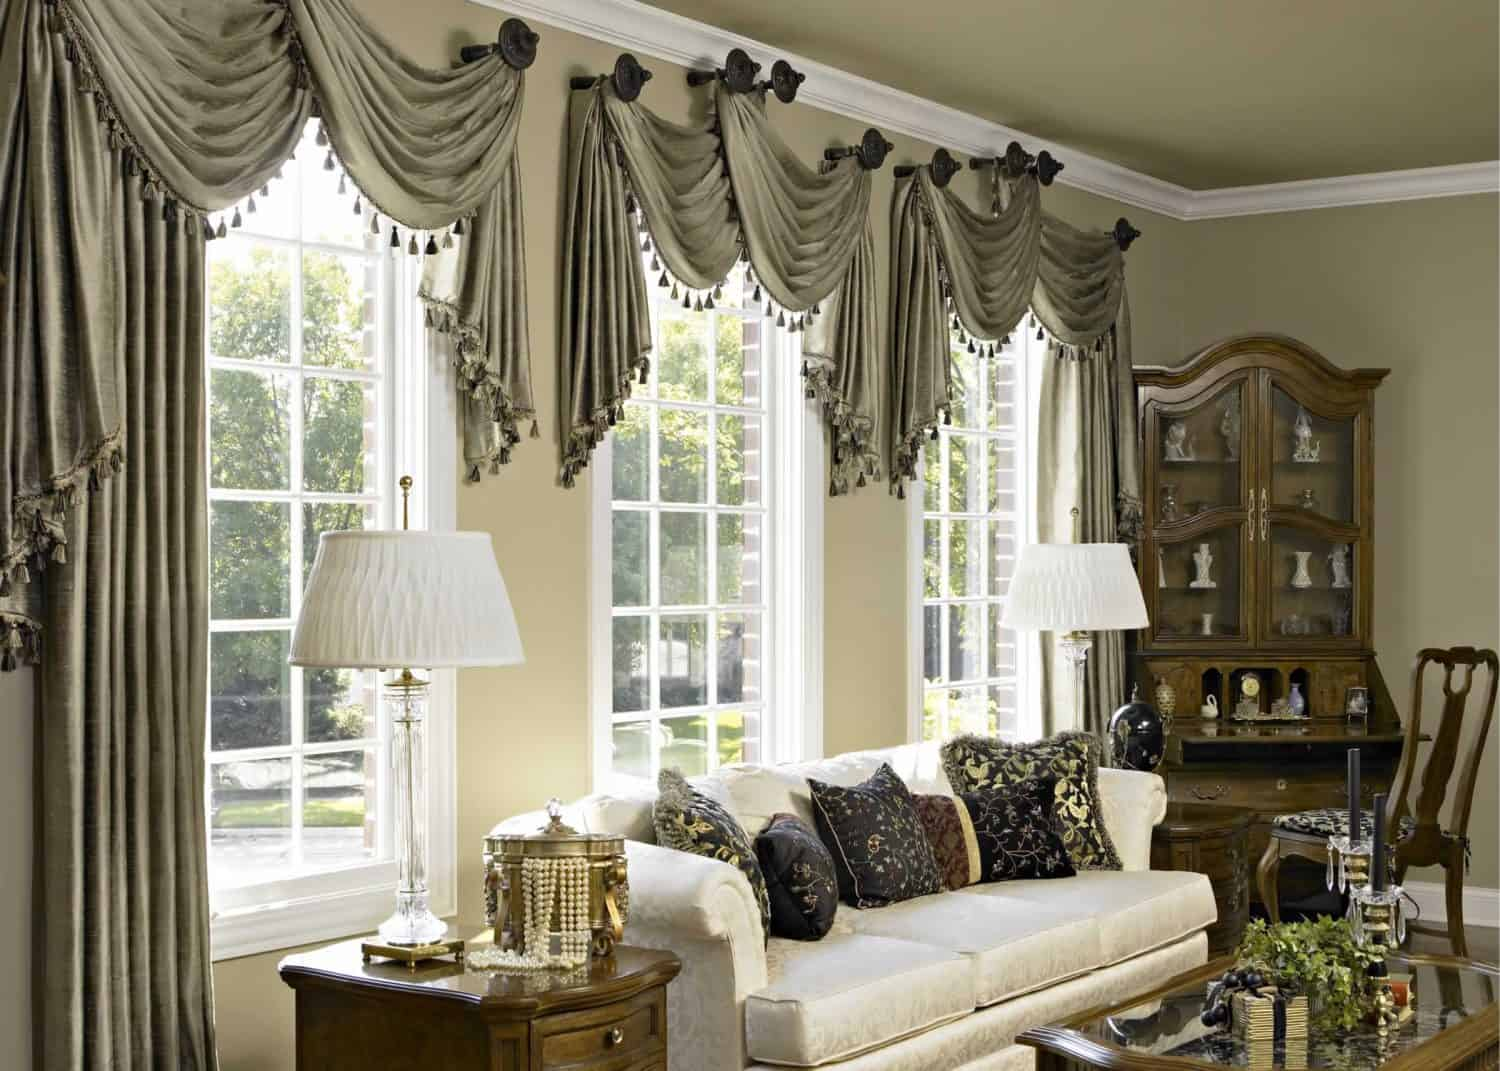 Ideas For Window Treatments Inspiration With Living Room Window Curtains Ideas Photo